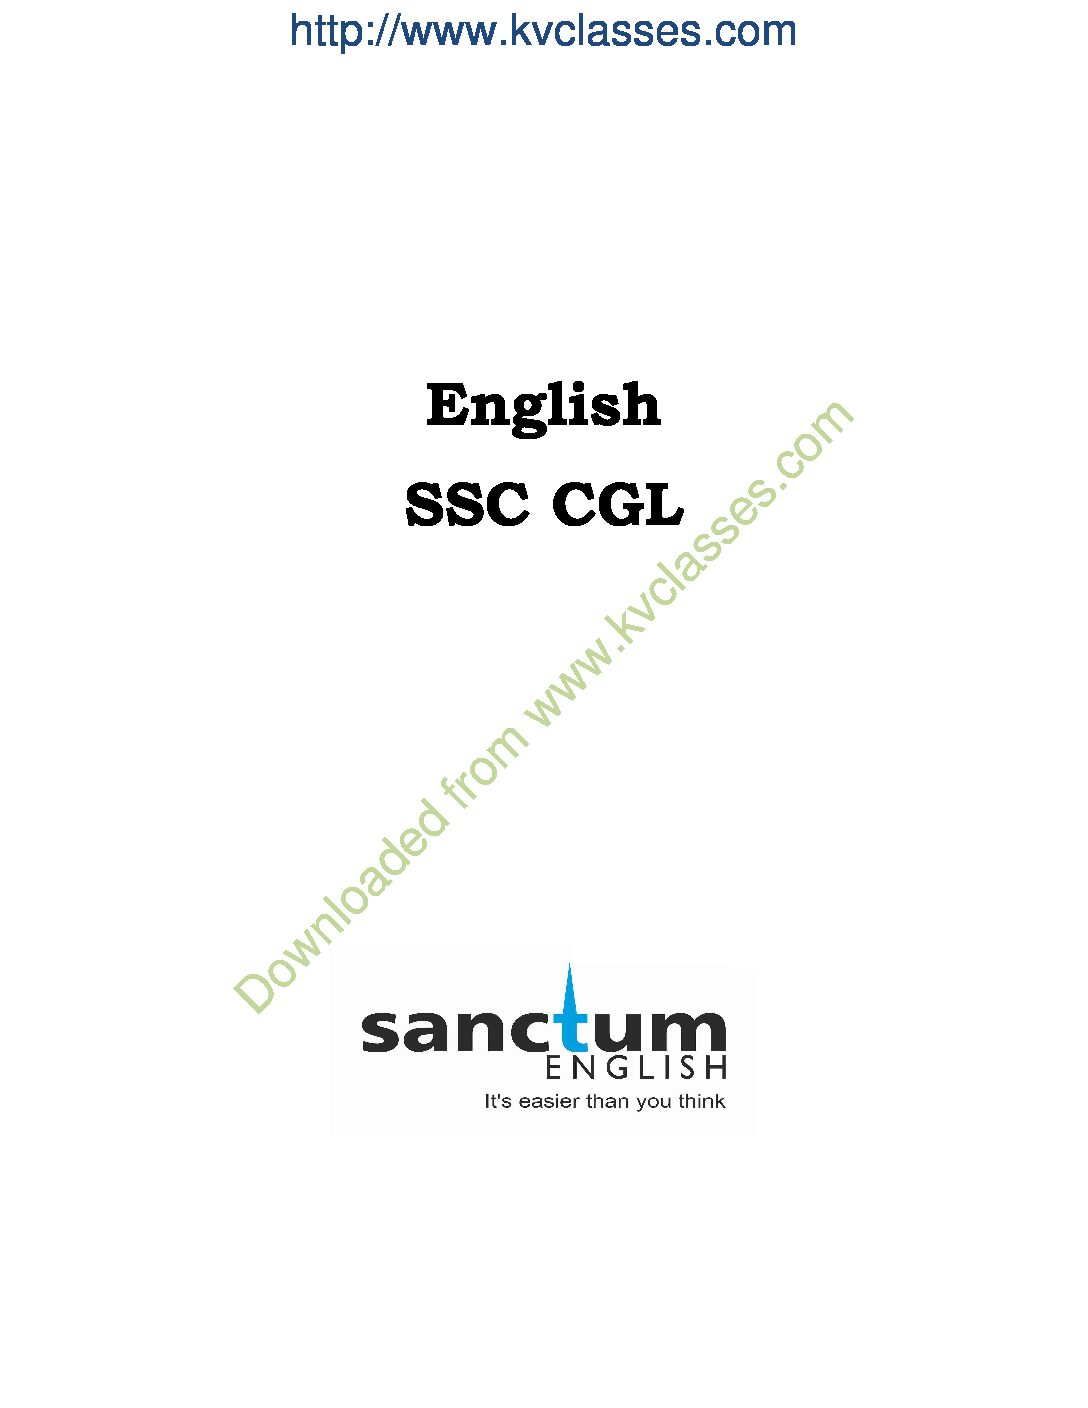 30 Days Program – SSC CGL Pre – Study Material( English)